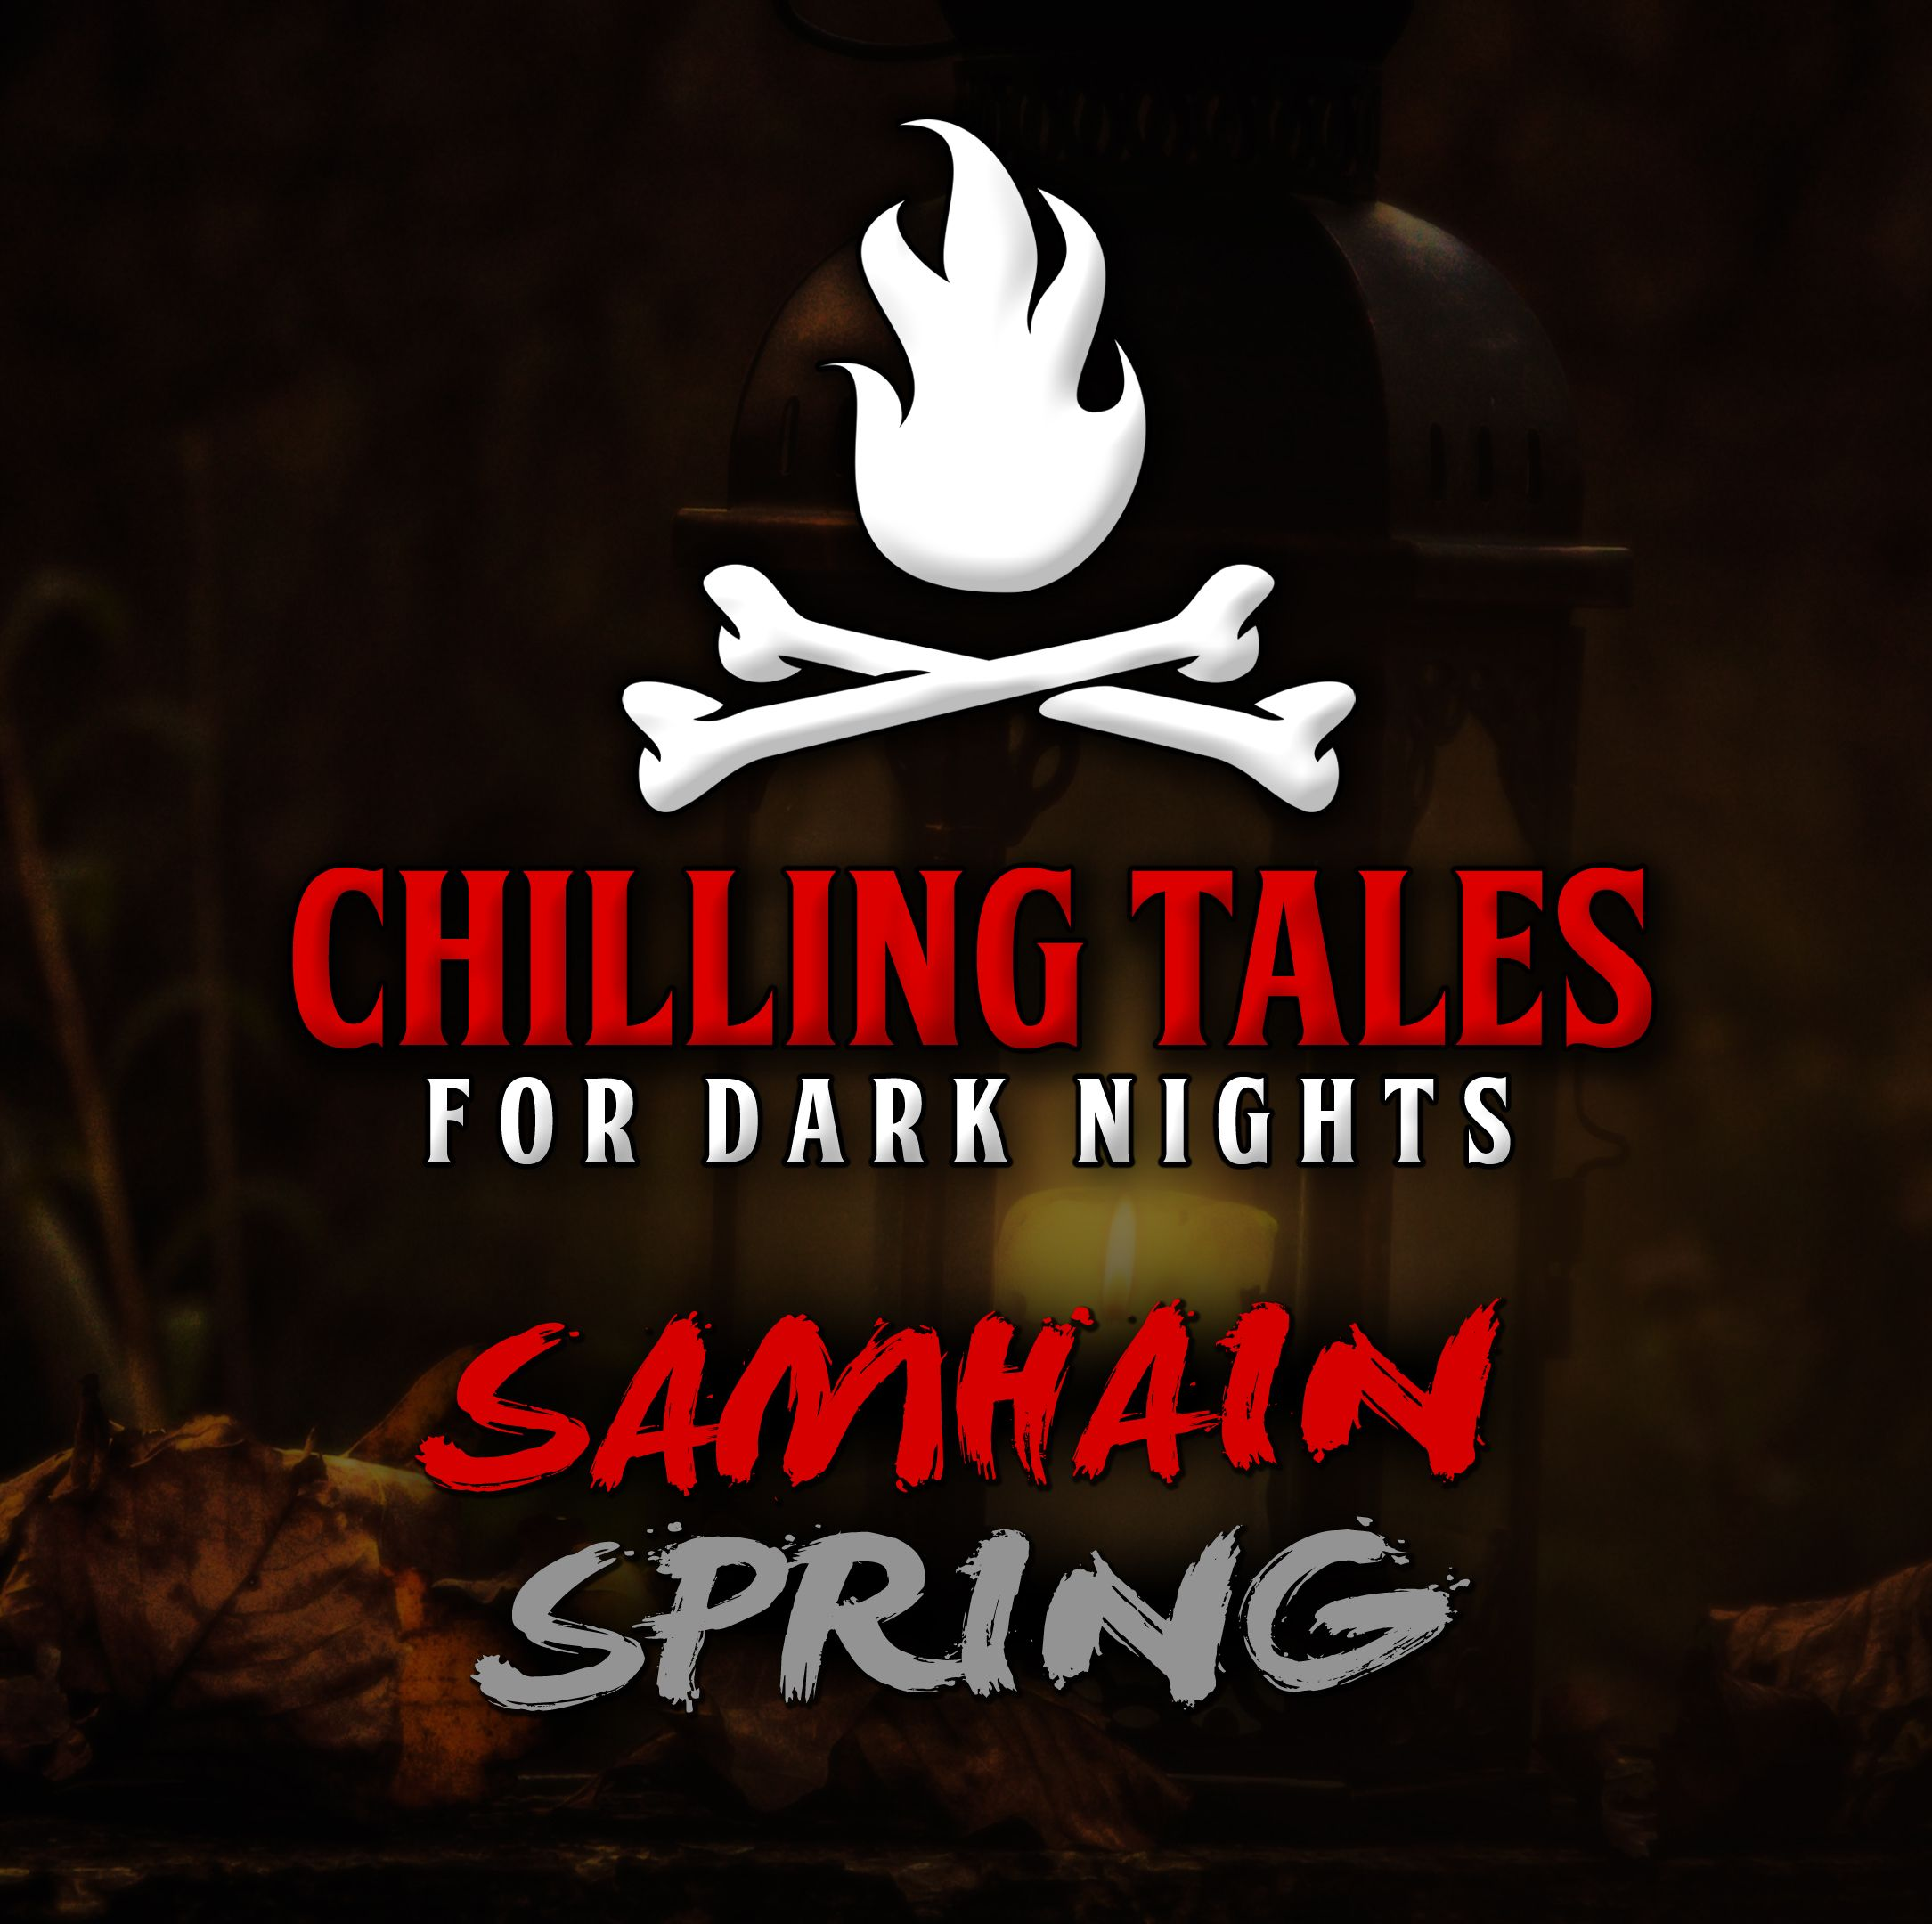 33: Samhain Spring – Chilling Tales for Dark Nights